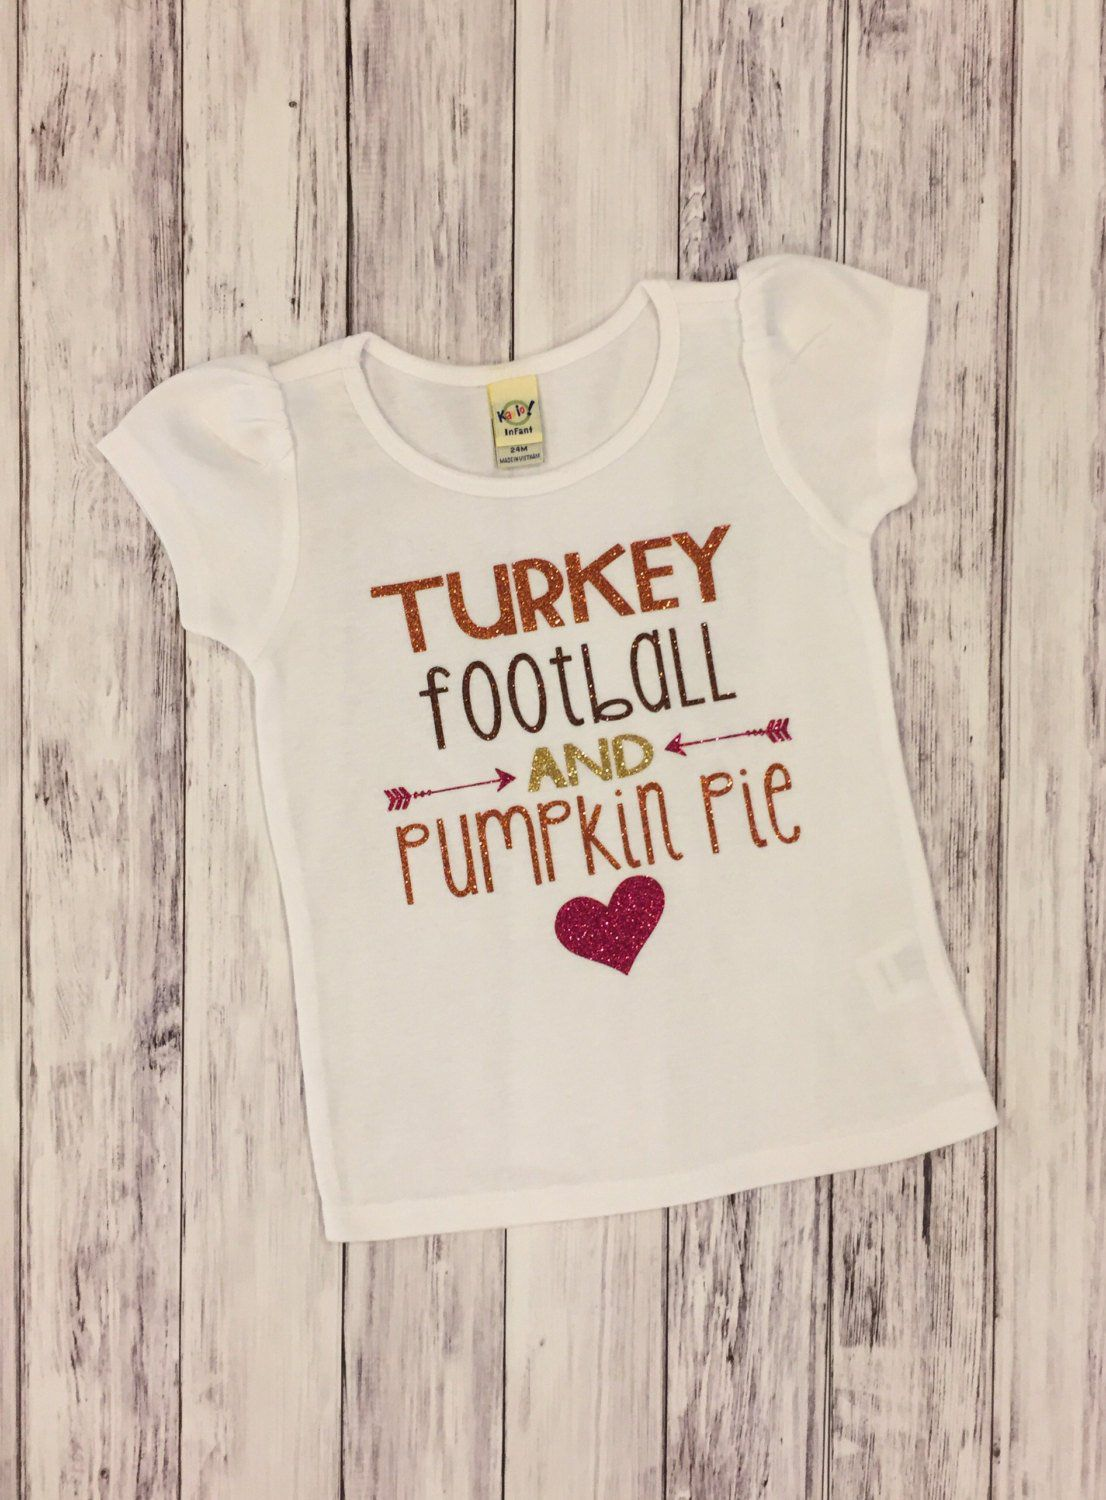 abcc9db76773a Turkey football pumpkin pie shirt, thanksgiving, thanksgiving shirt ...